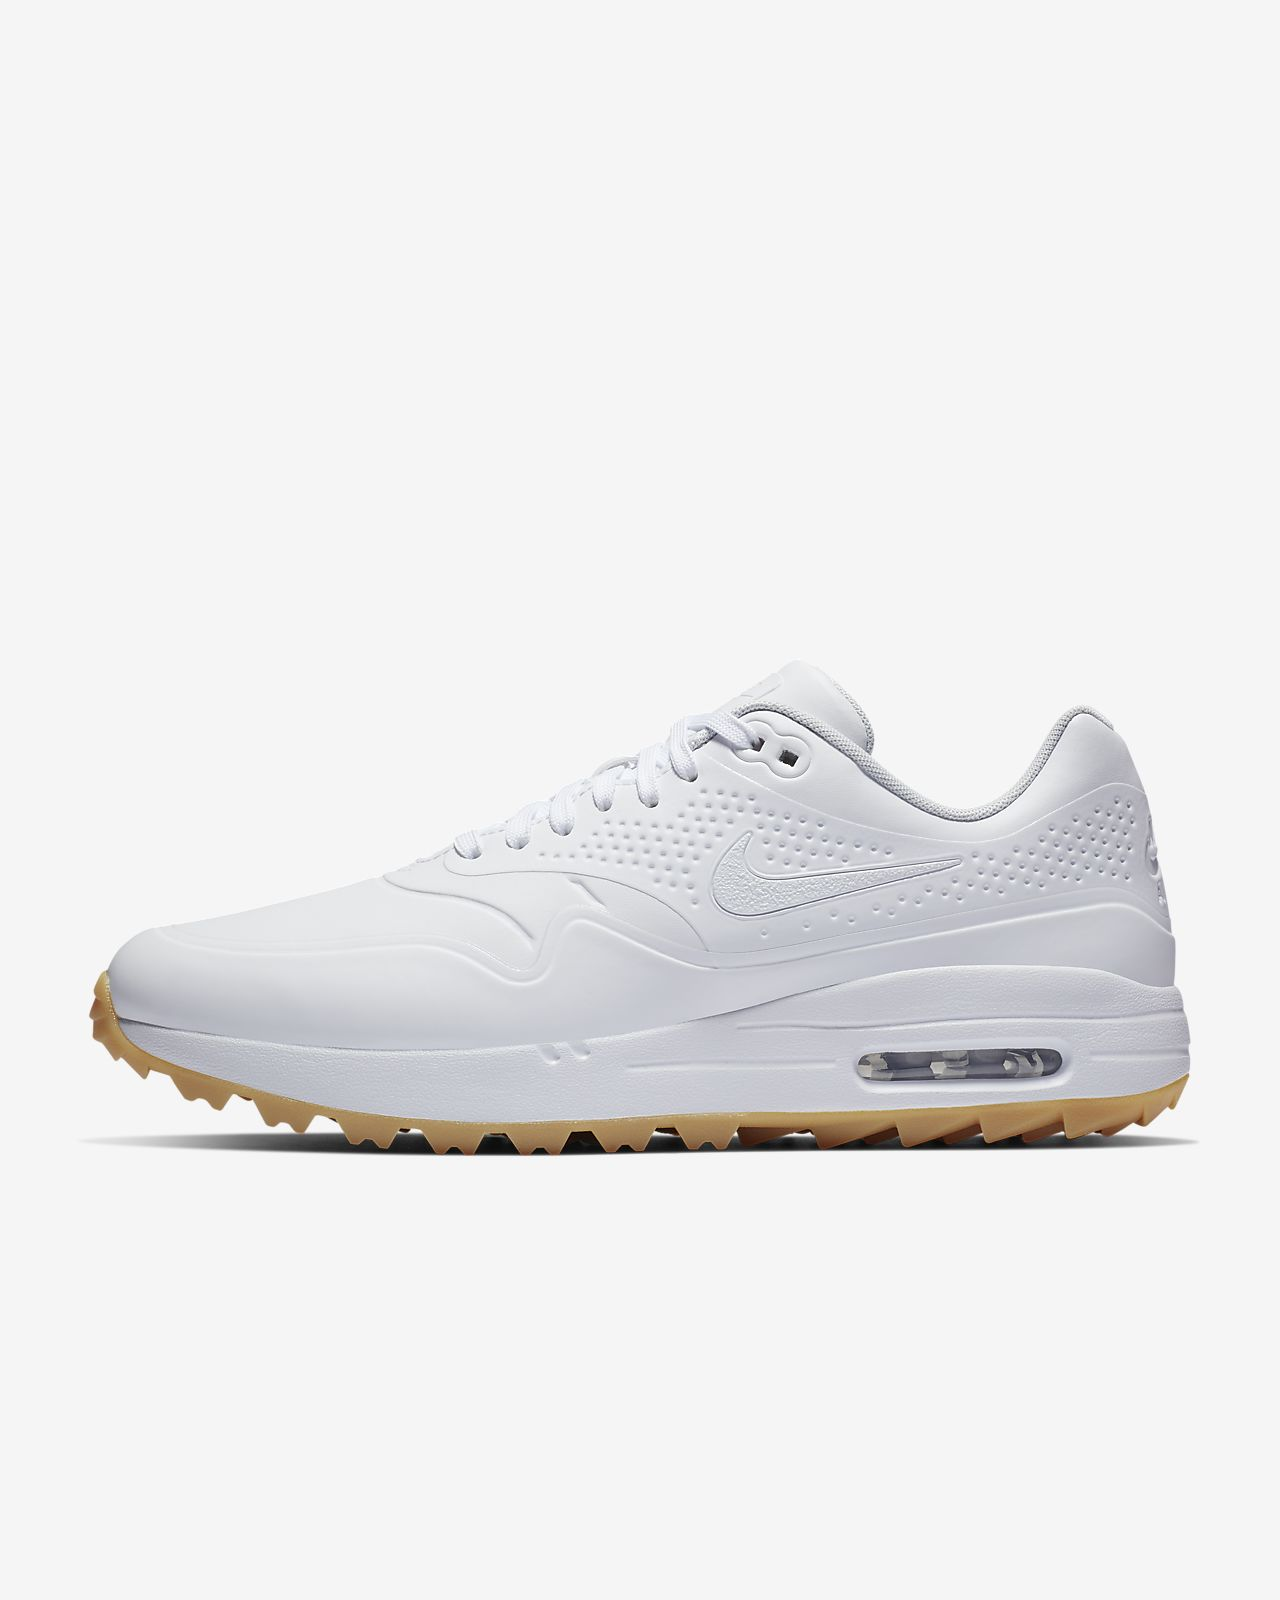 competitive price 7f6ef 29fec Nike Air Max 1 G Men's Golf Shoe